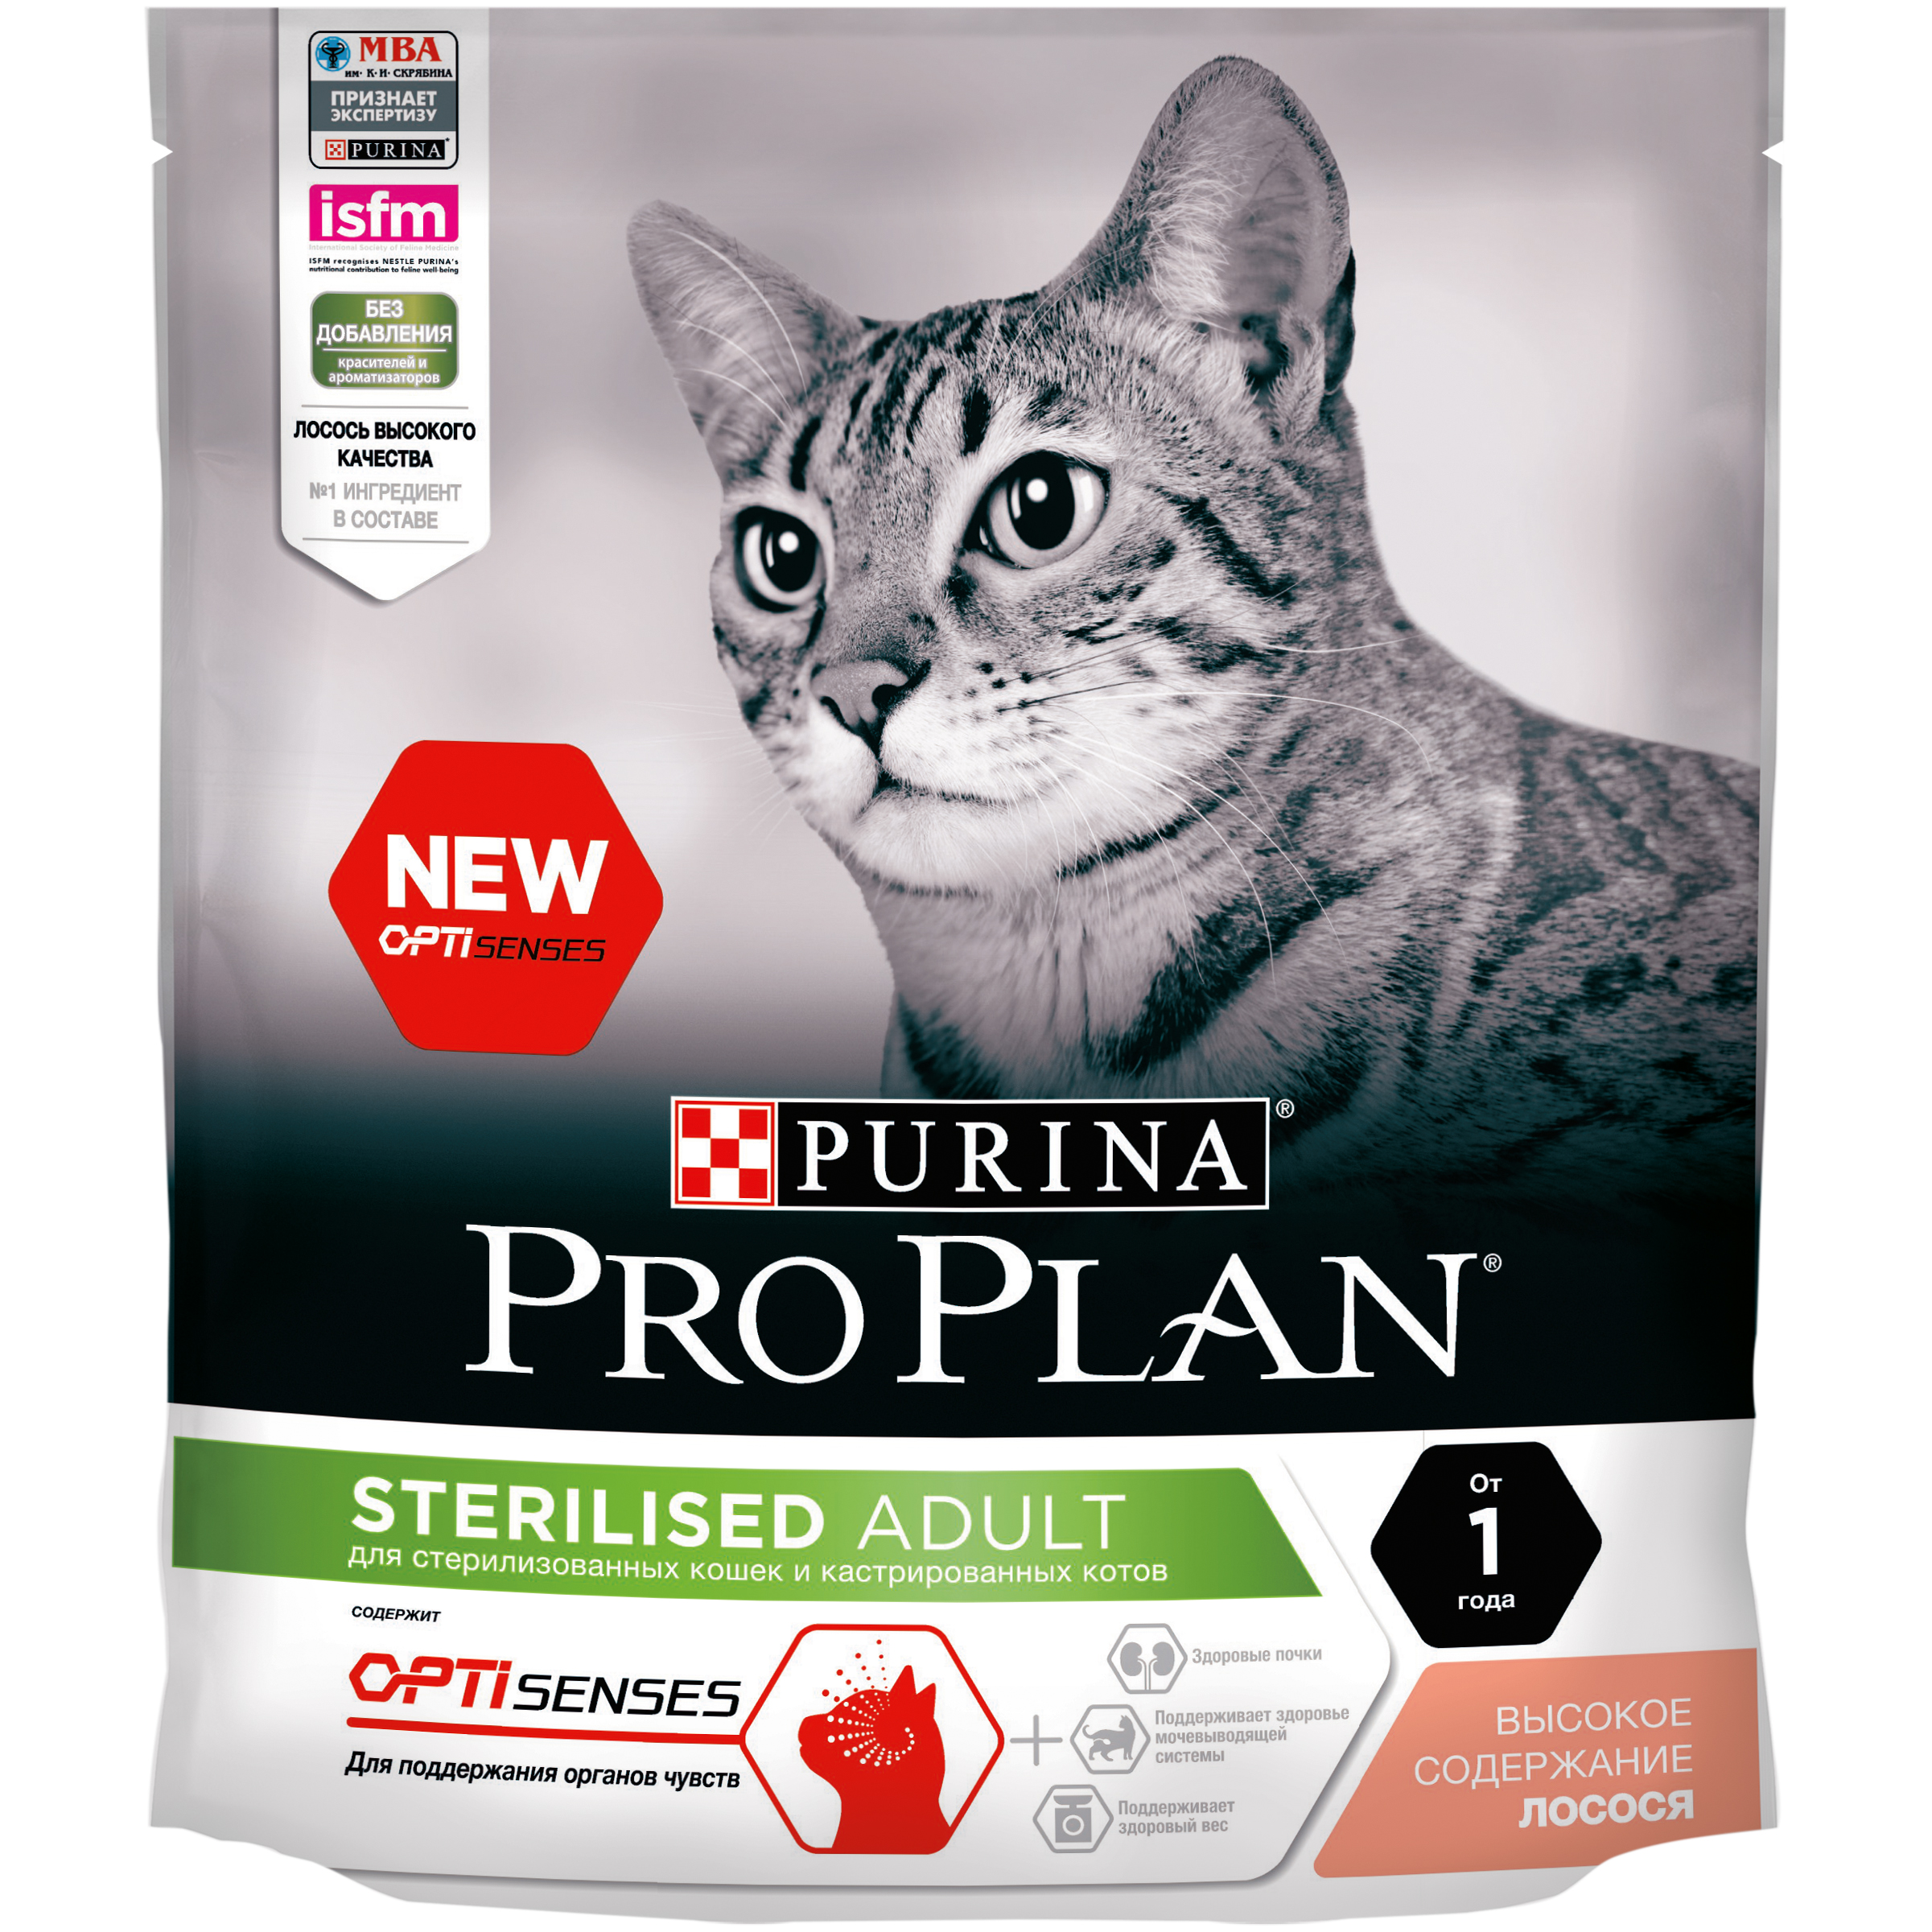 Pro Plan dry food for sterilized cats and neutered cats, for the maintenance of the senses, with salmon, Package, 400 g pro plan dry food for sterilized cats and neutered cats for the maintenance of the senses with salmon 8 x 400 g